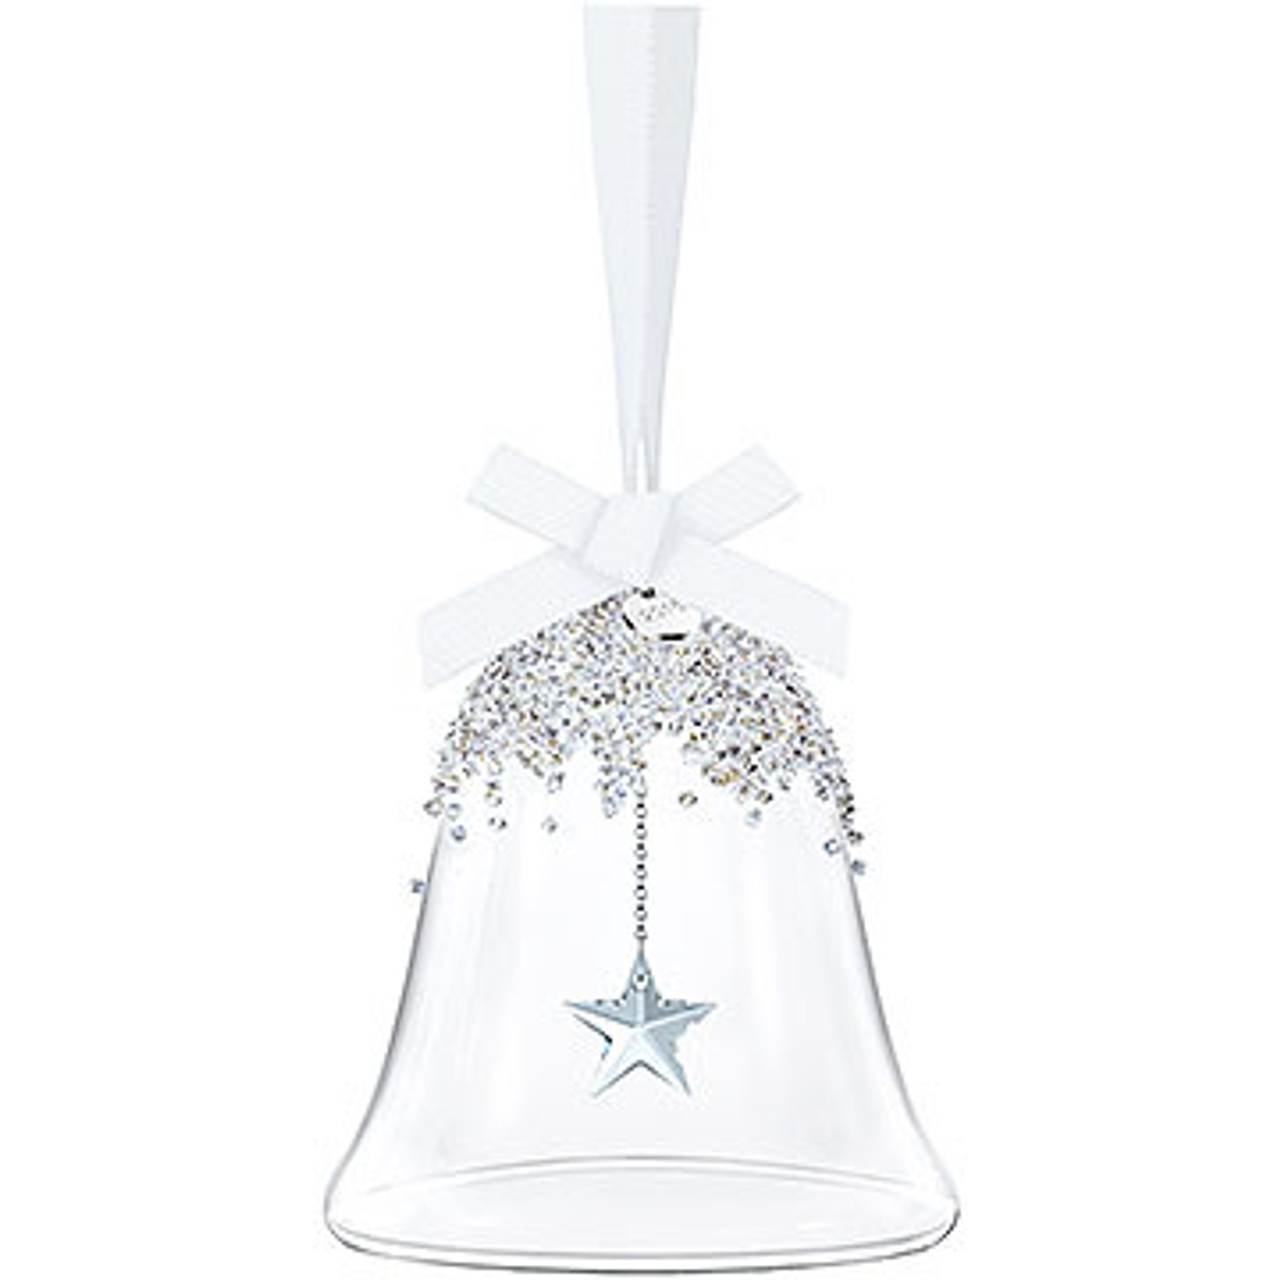 69d9a9b8c2e6eb Christmas Bell Ornament (Annual Edition 2016) - POSH GIFTS and More